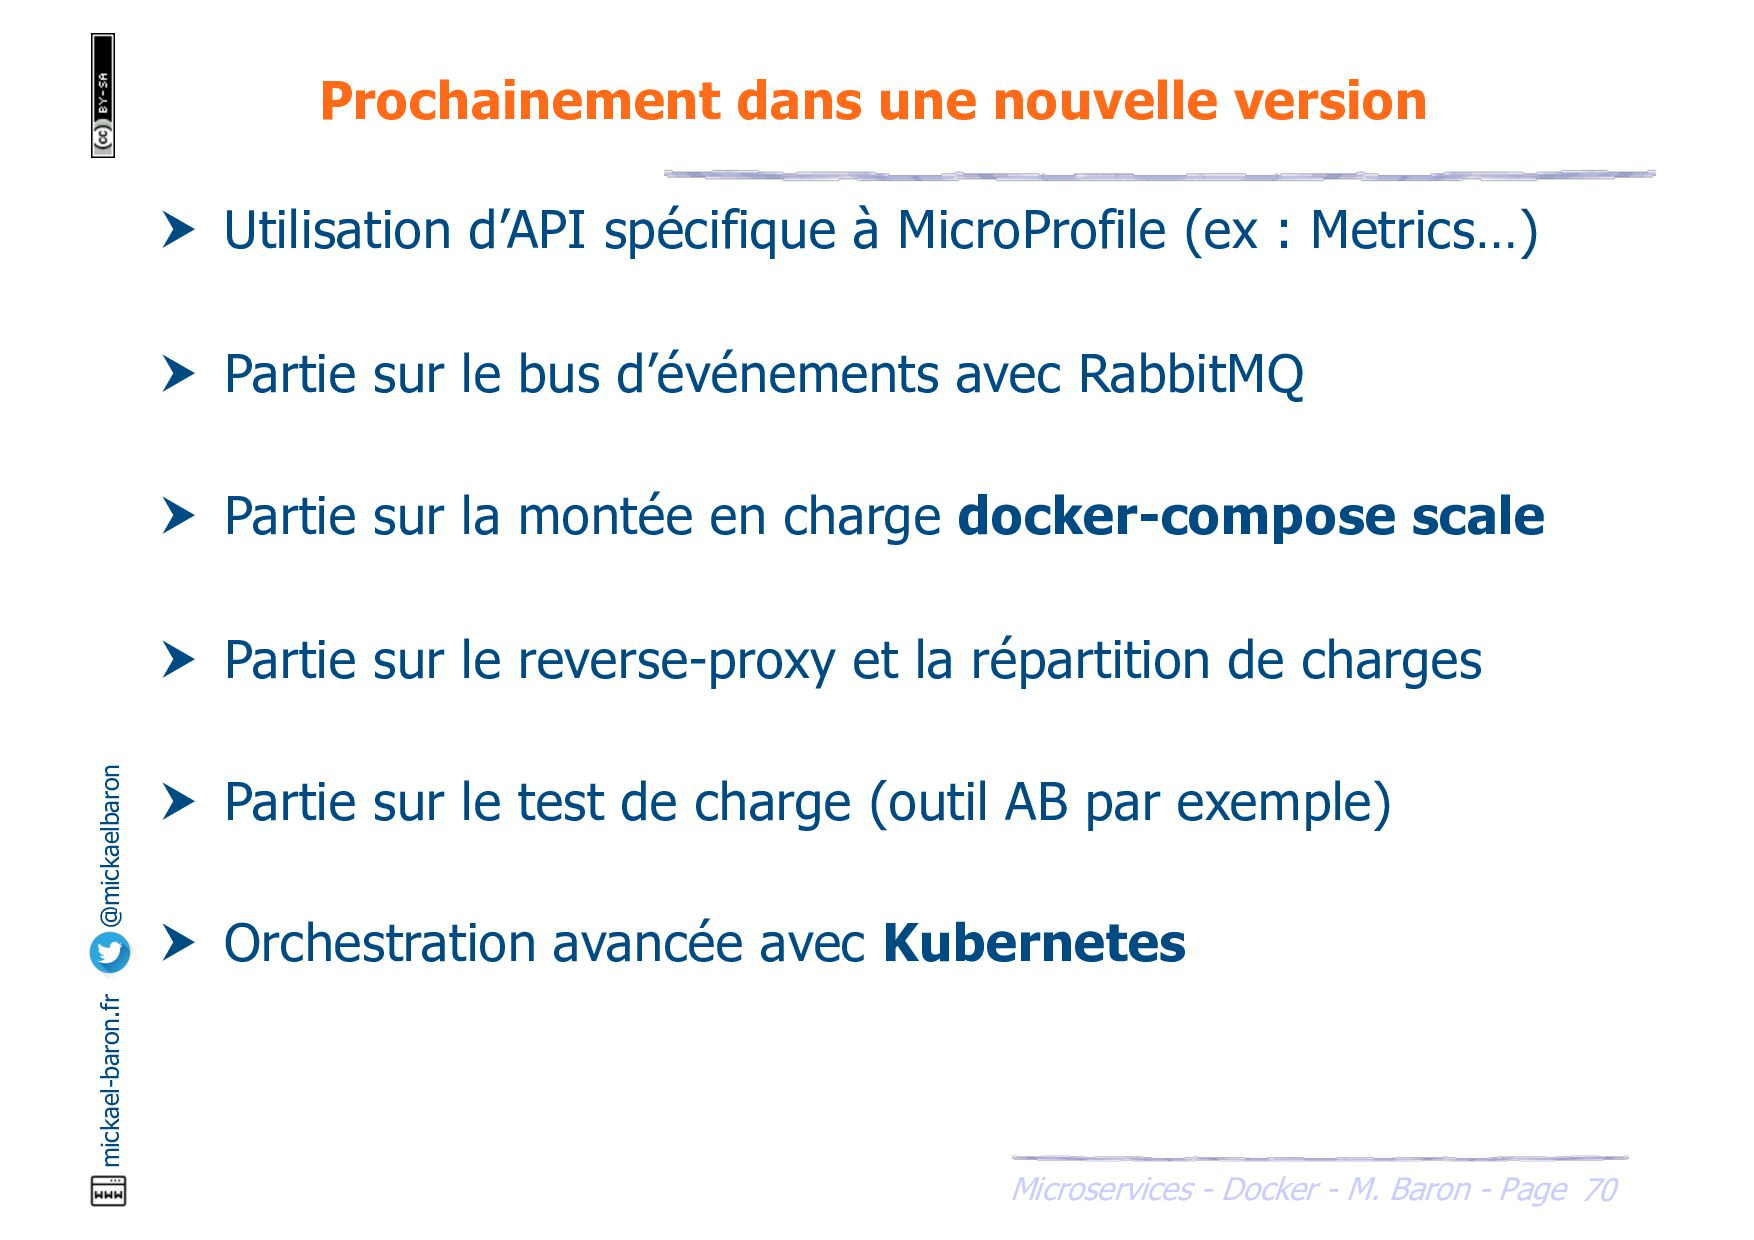 SOA - Microservices - Outils - M. Baron - Page ...